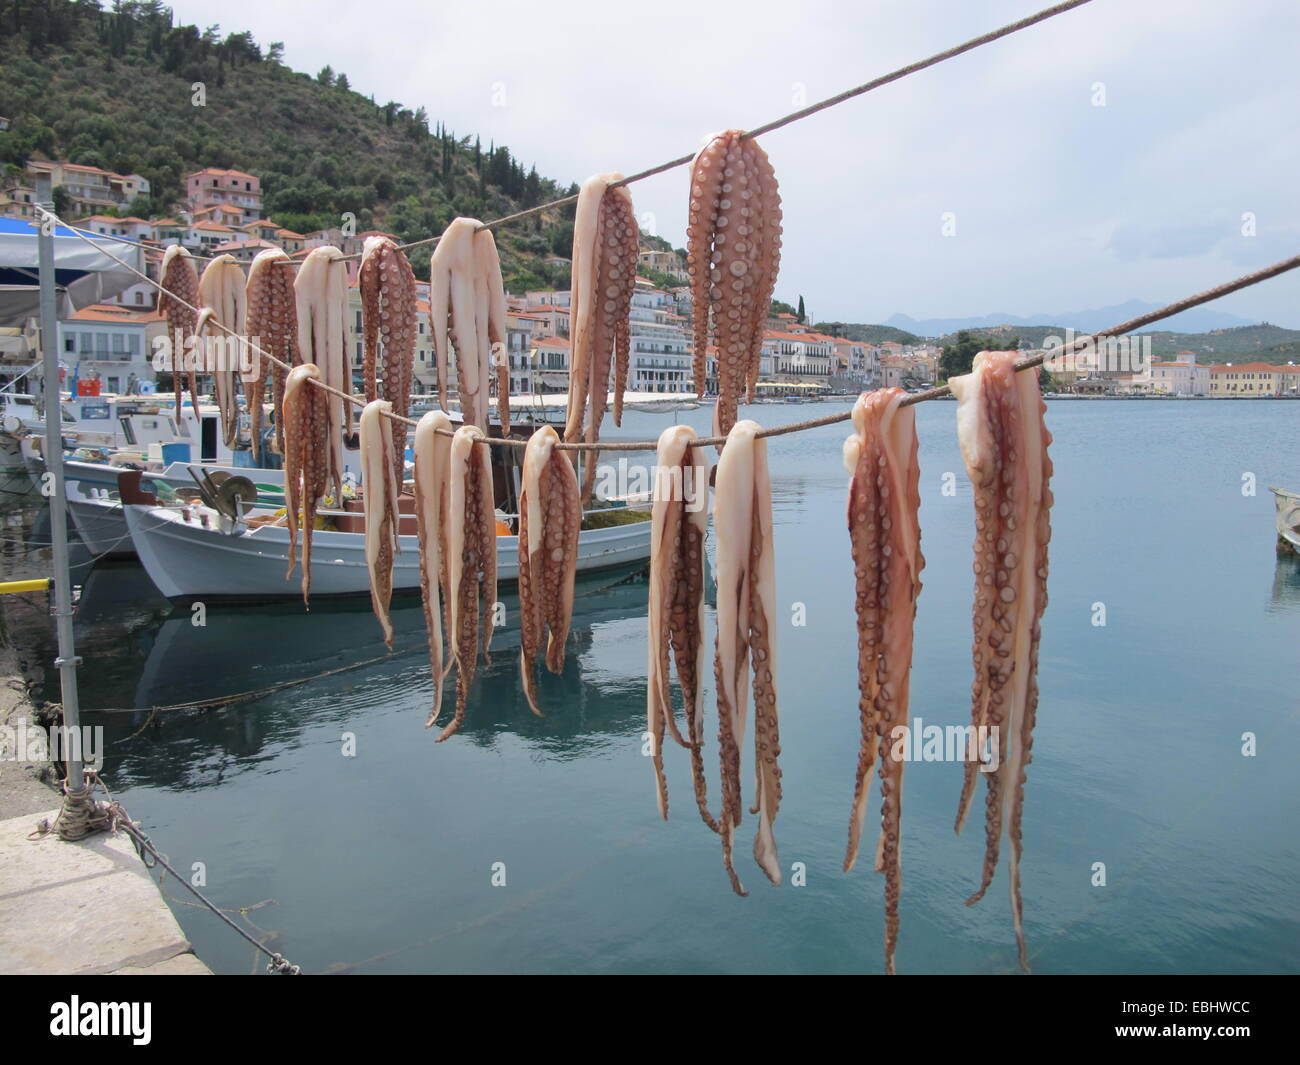 Squid drying ion the sun in Greece - Stock Image